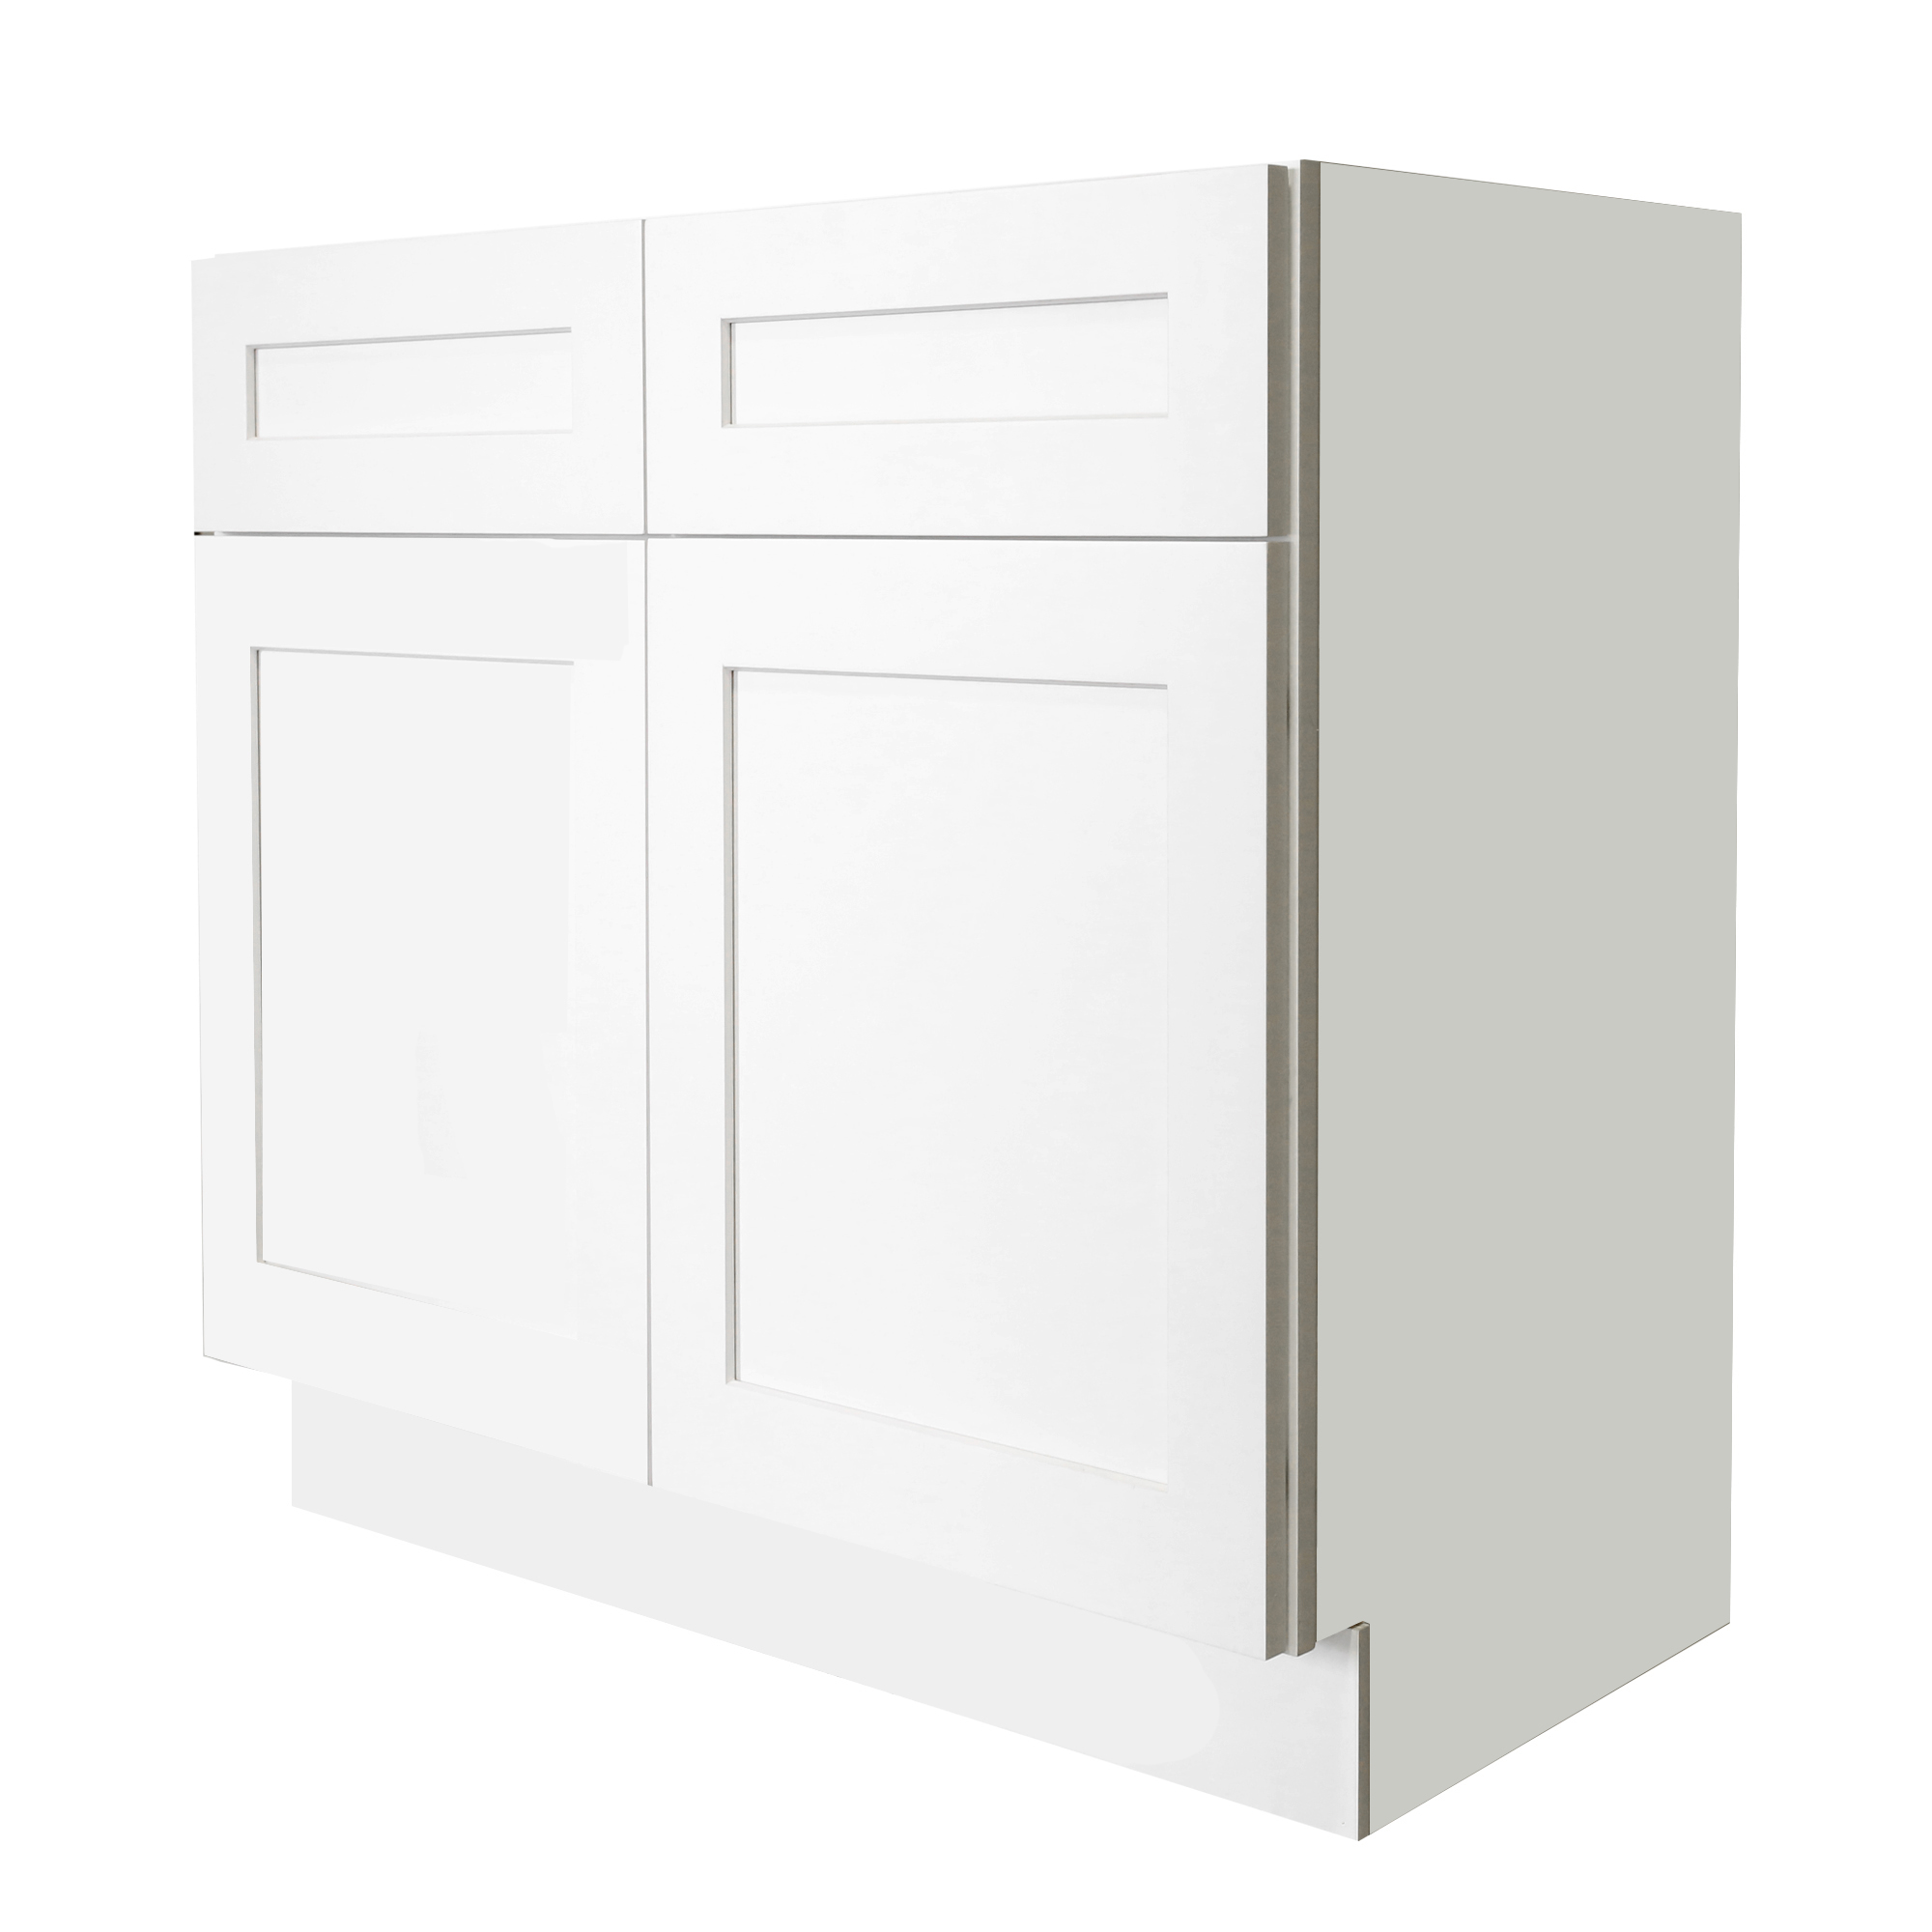 Ready to Assemble 39x34.5x24 in. Shaker Sink Base Cabinet with 2 Doors in White